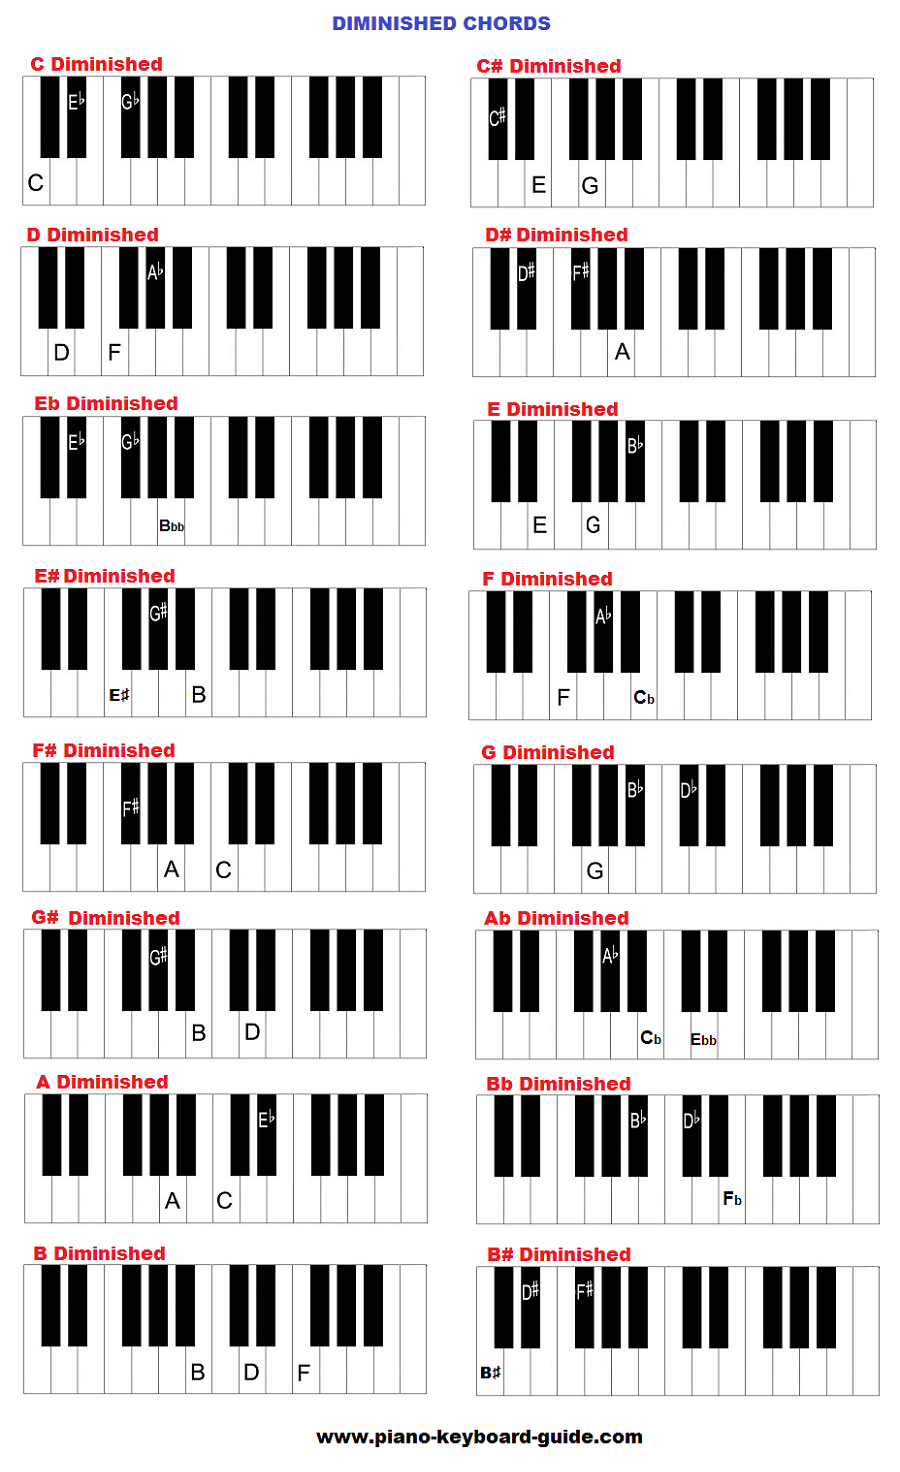 D dim chord guitar images guitar chords examples diminished piano chords chartg fatherlandz images hexwebz Image collections